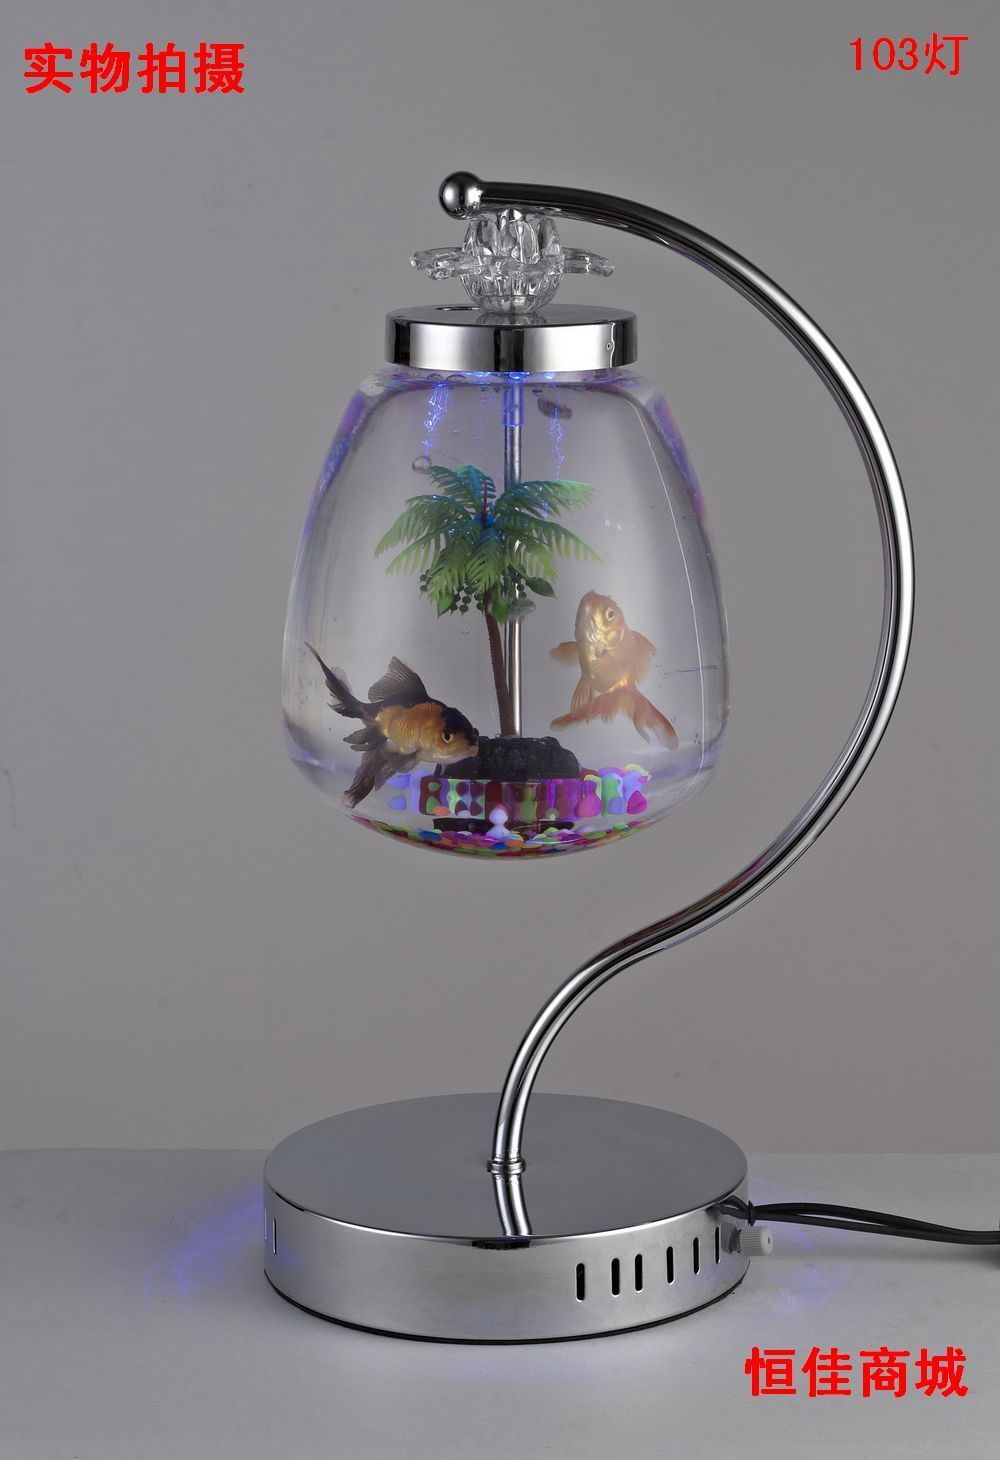 Small aquarium fish tanks - Table Lamp Fish Tank Small Desktop Fish Tank Goldfish Bowl Decoration Fishtales Pinterest Tanks Fish Tanks And Aquarium